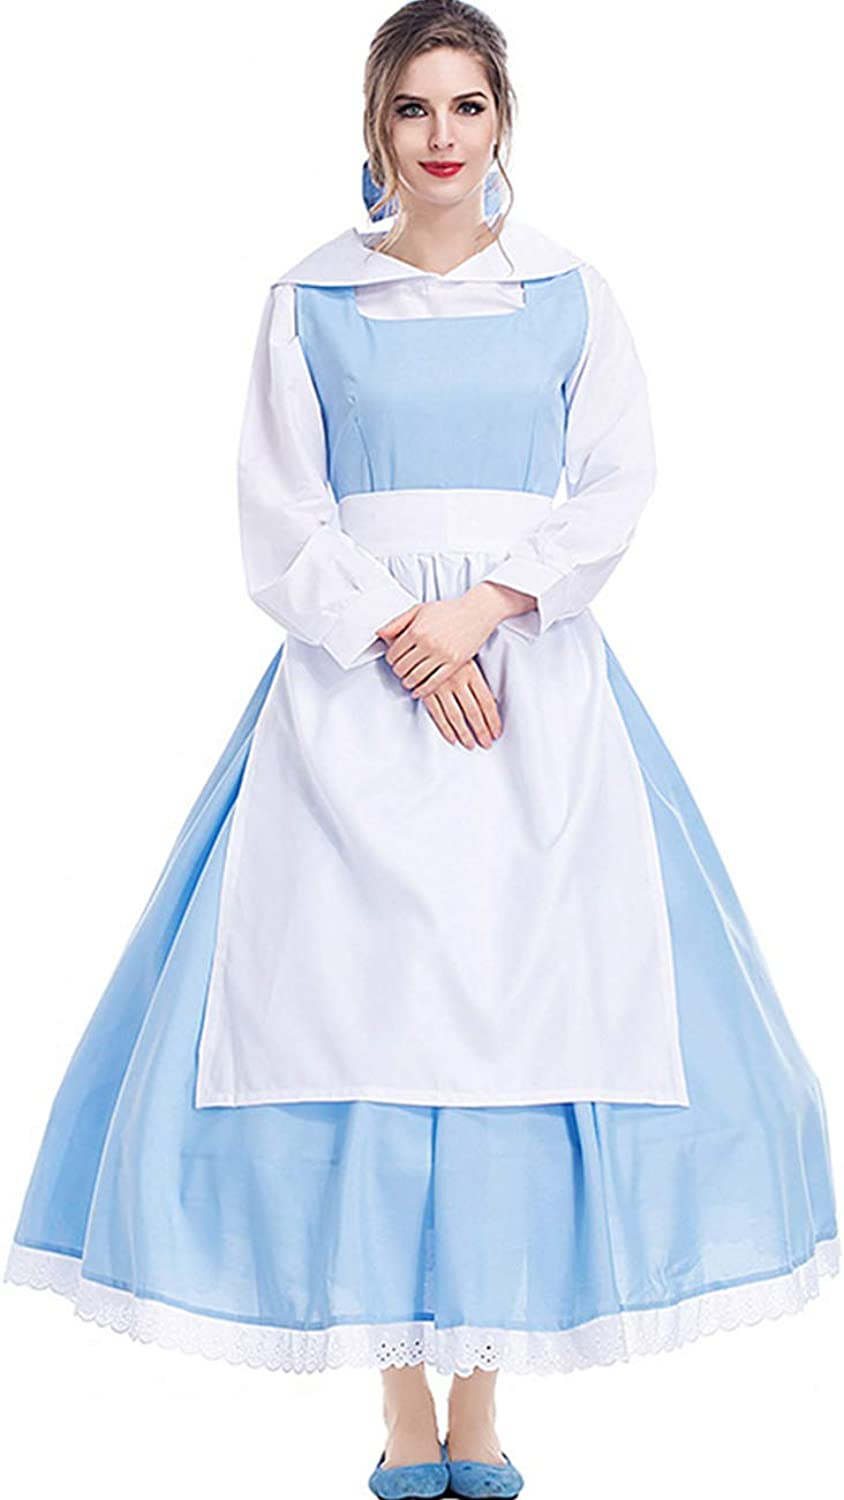 colorful House Women's Cosplay Outfit bluee Dress Maid Fancy Dress Costume